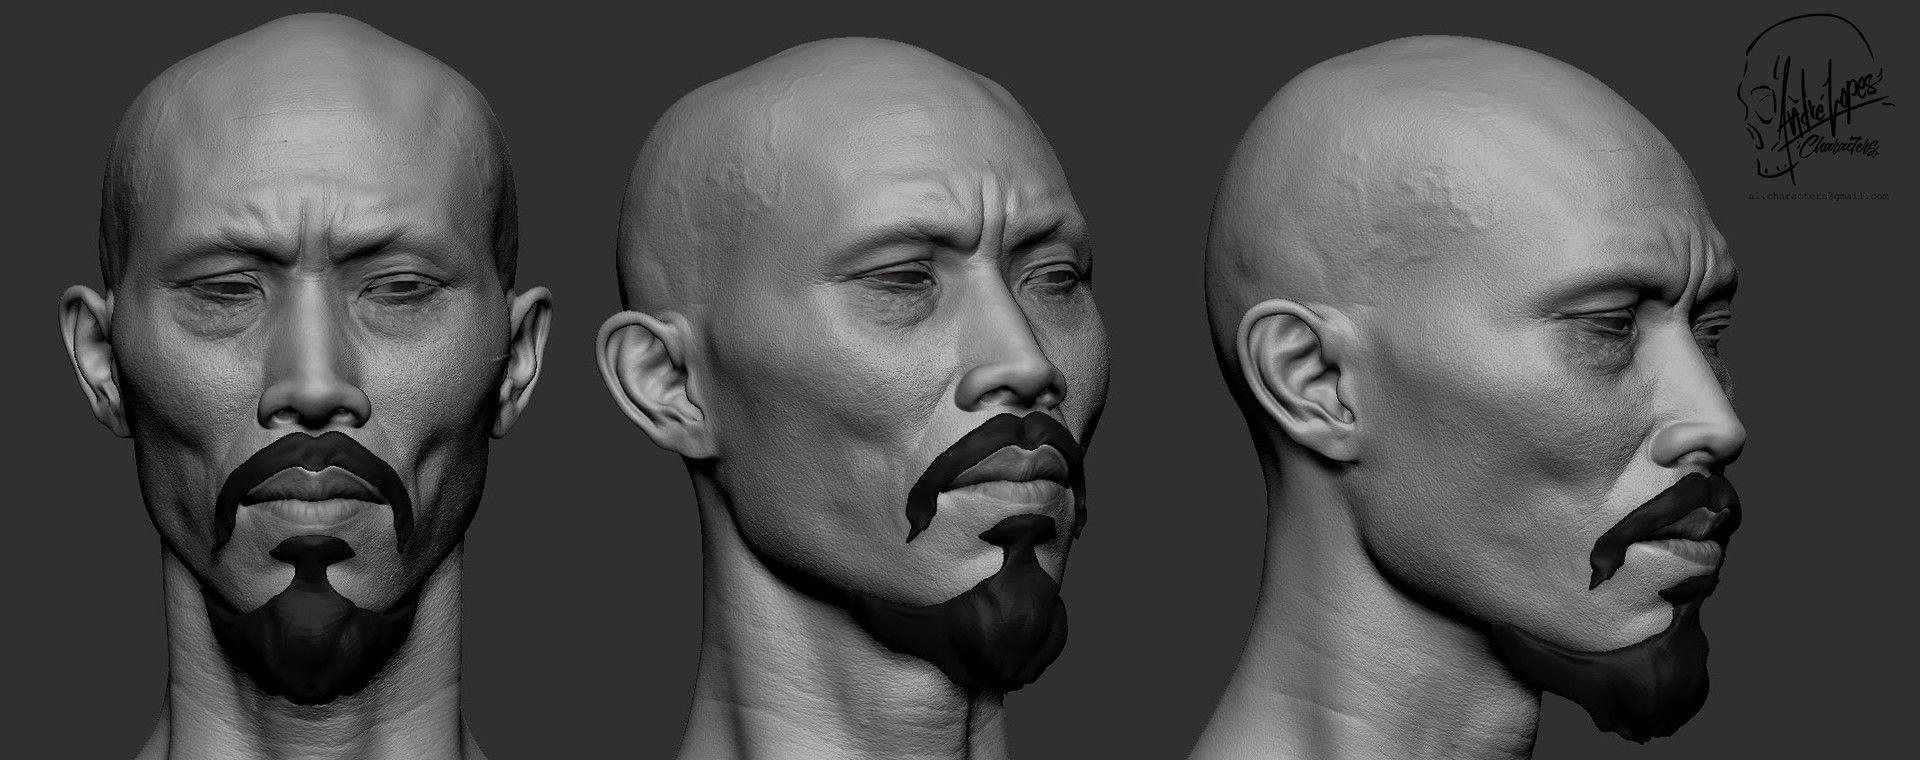 ArtStation - WIP - One Hundred Eyes Likeness - Tom Wu - Marco Polo ...